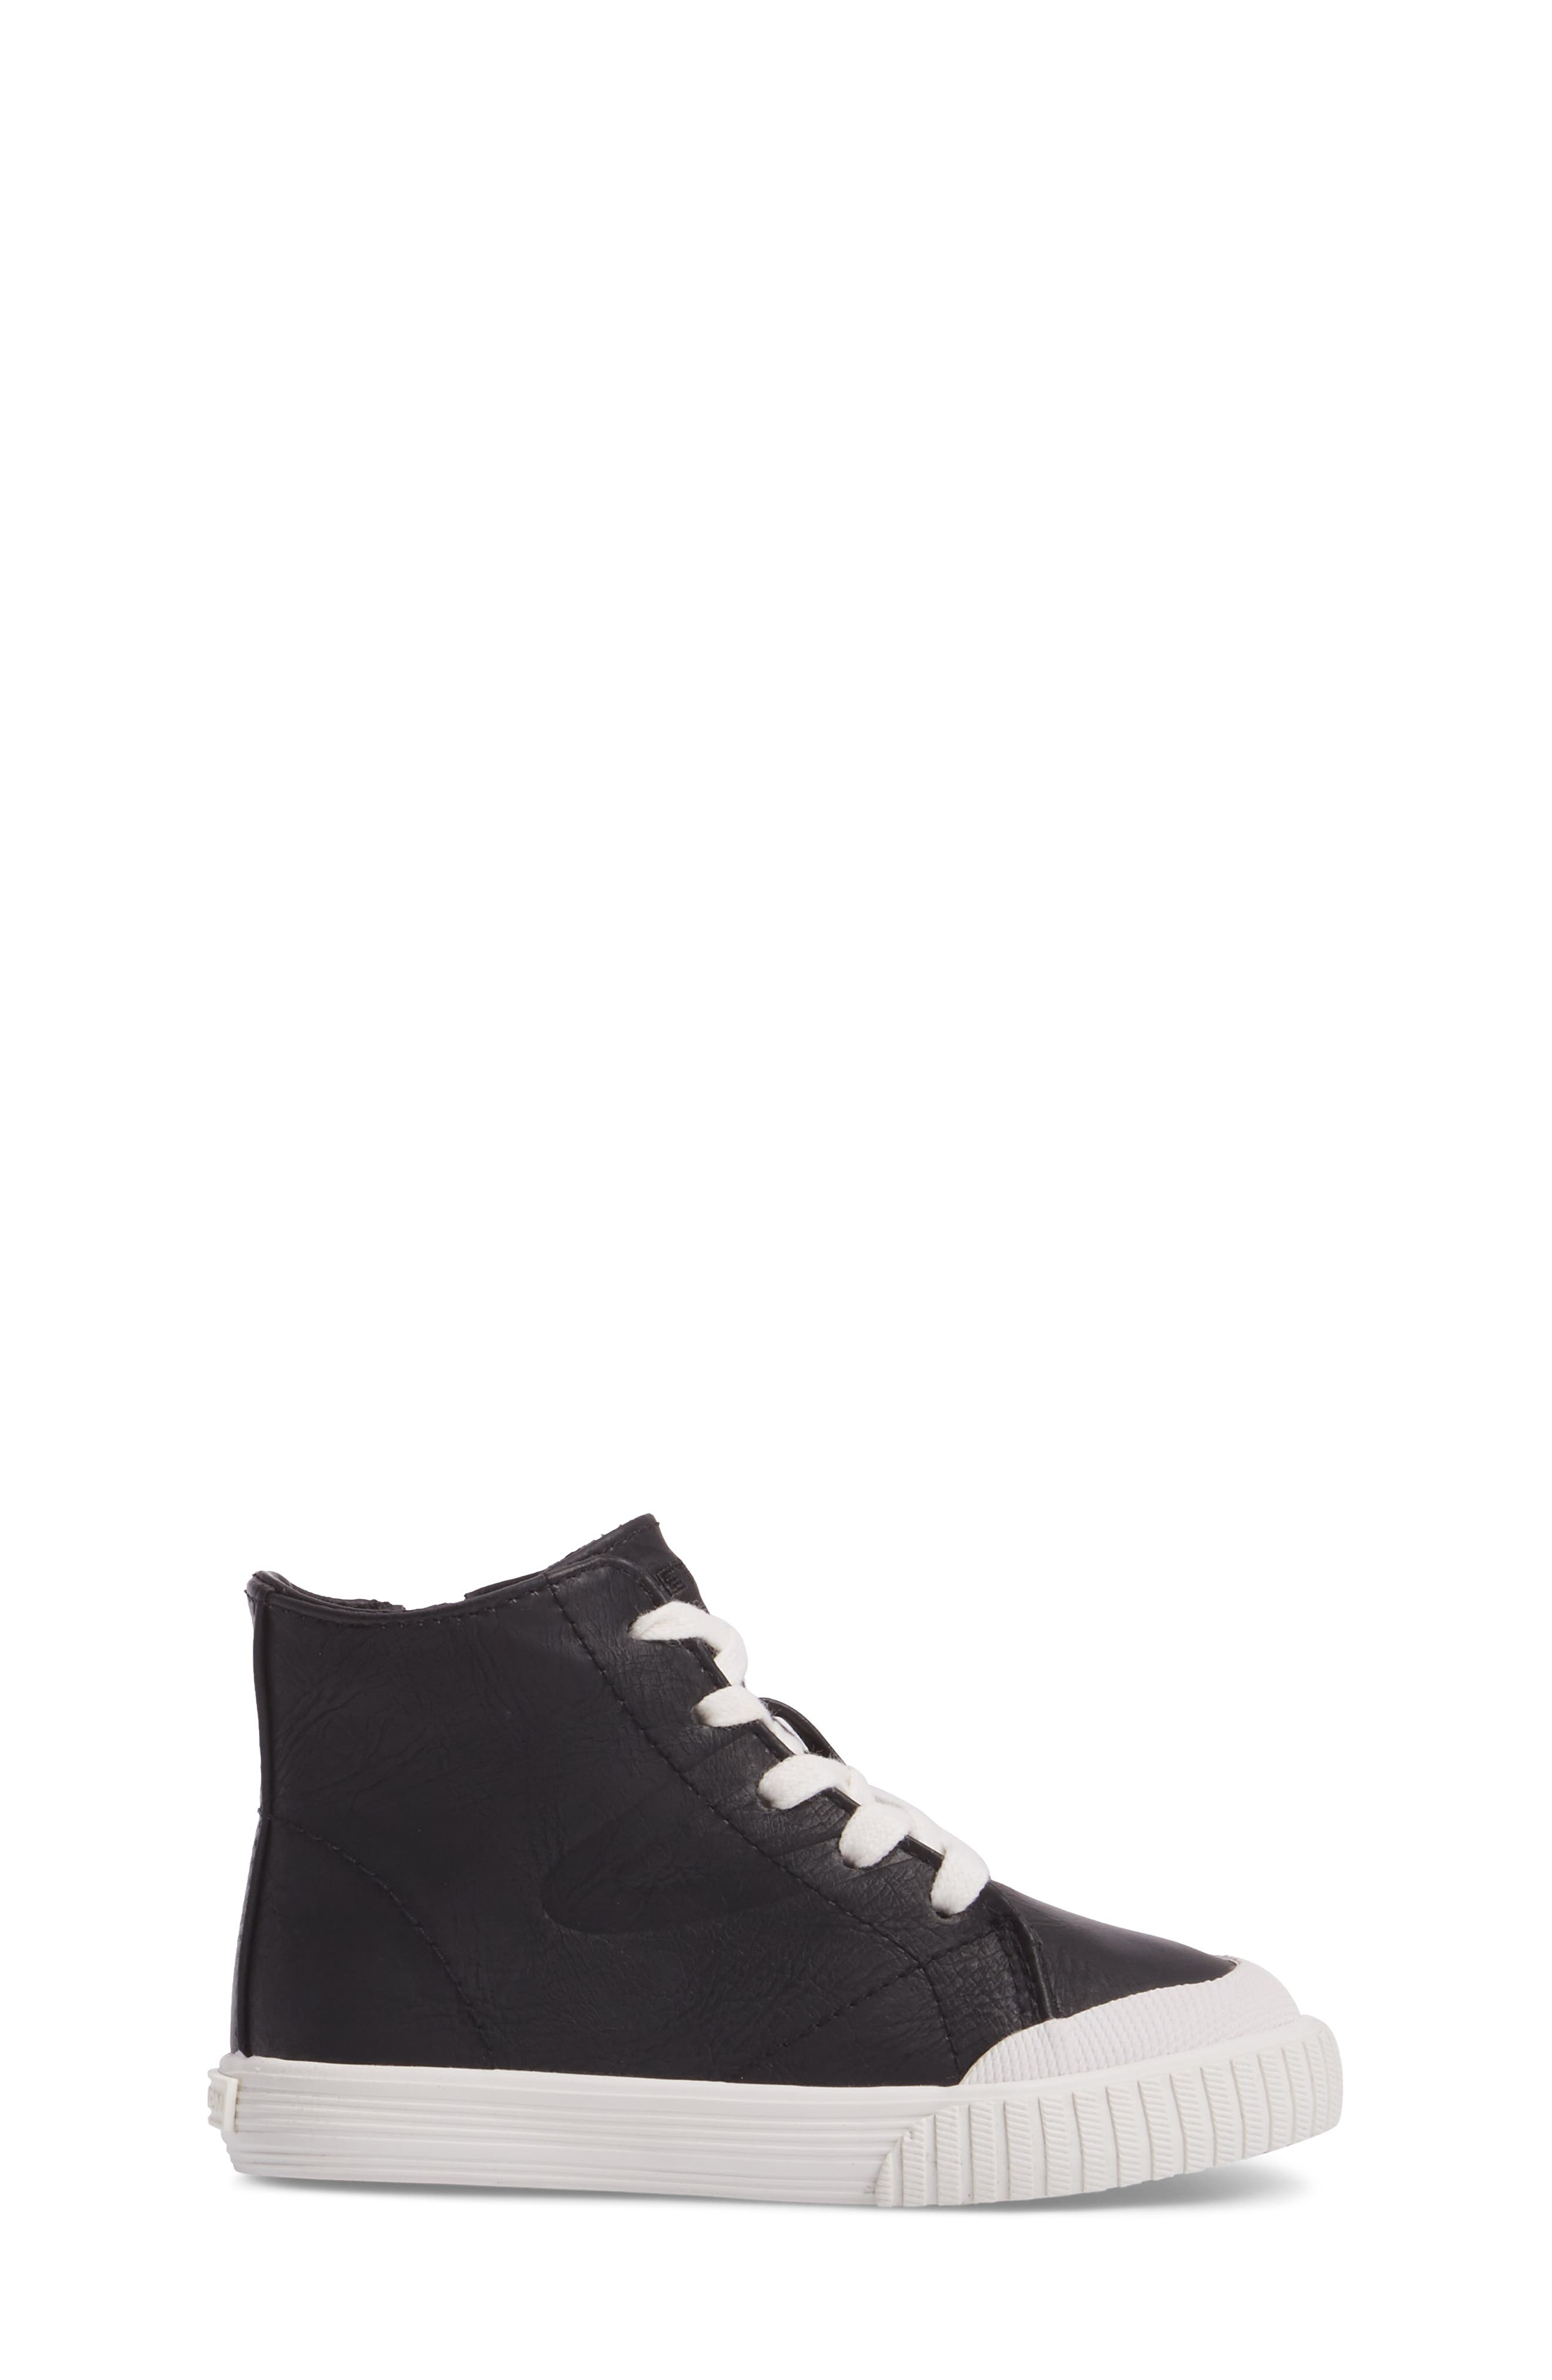 Marley High Top Sneaker,                             Alternate thumbnail 3, color,                             001